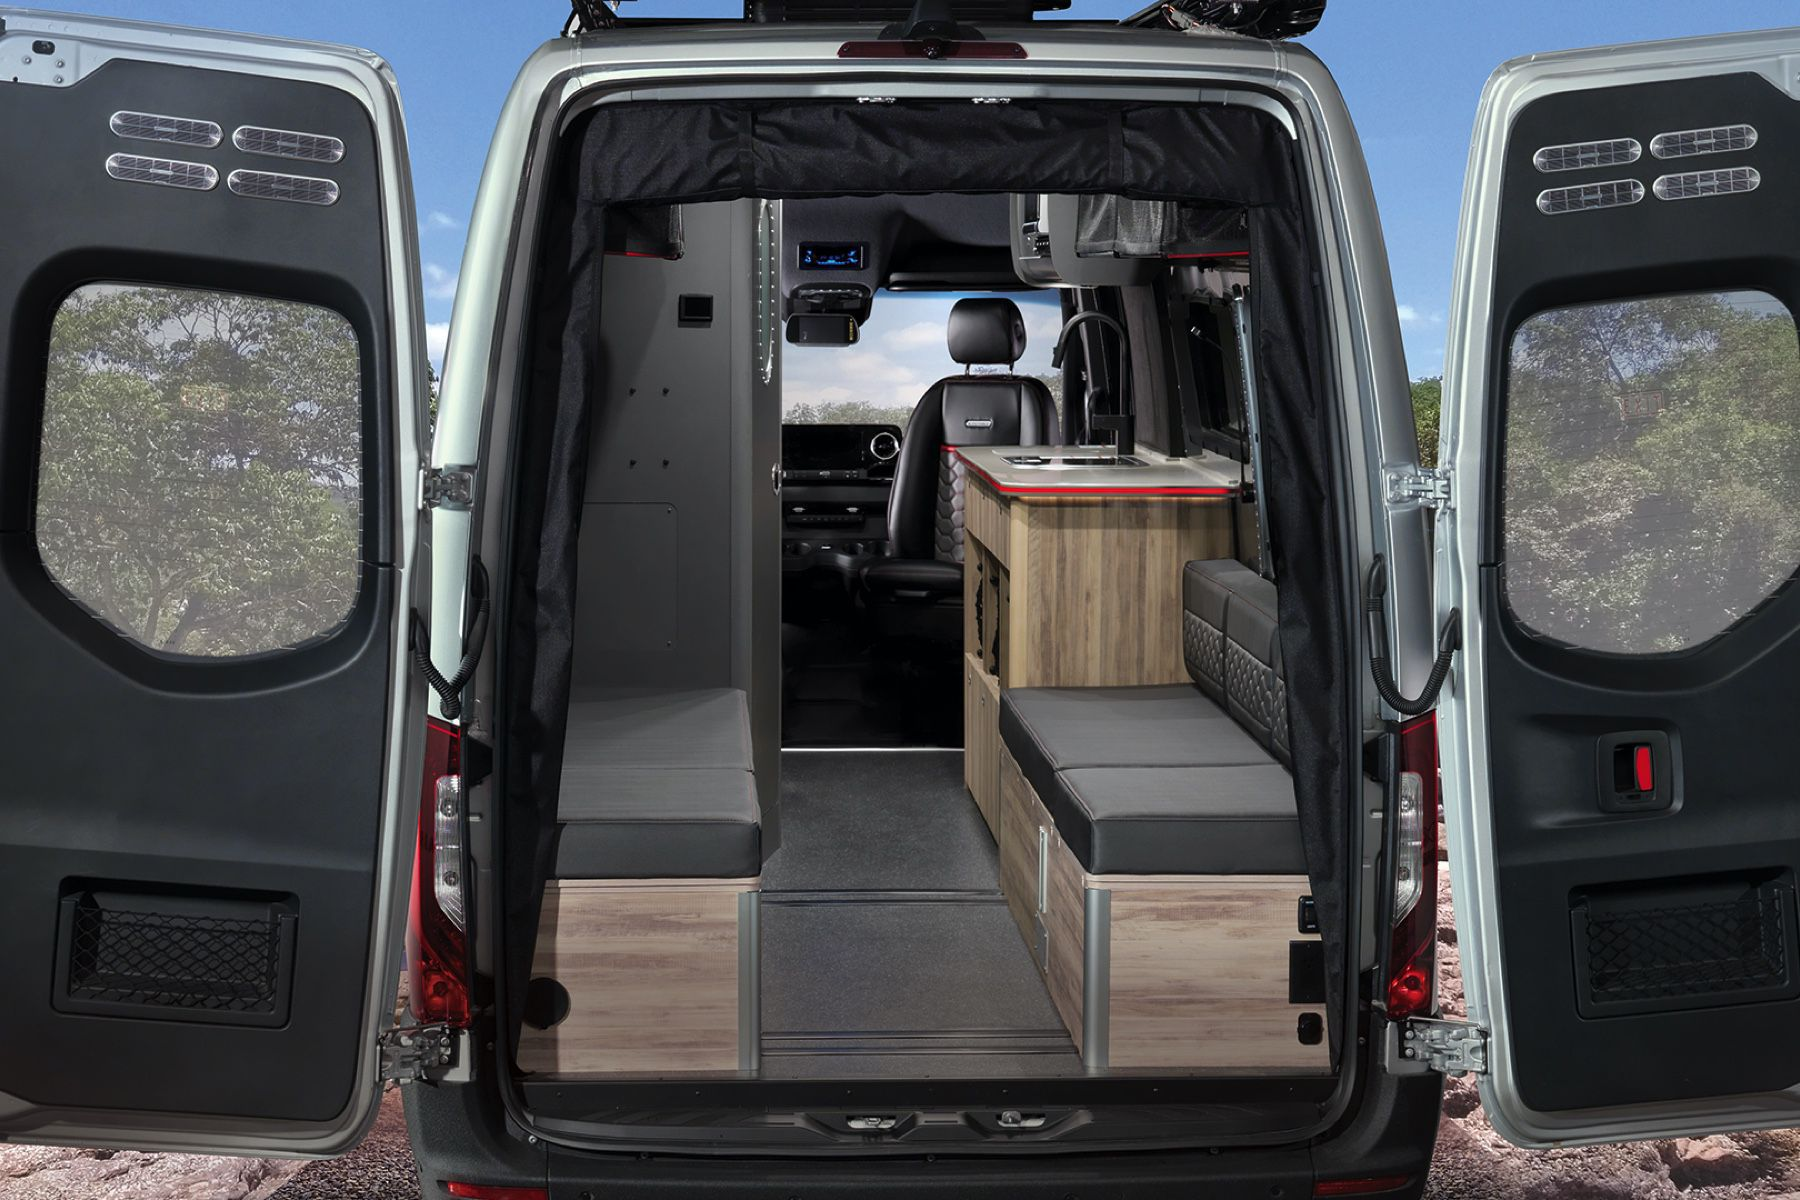 Airstream's take on van-life is a luxo-camper that costs a casual US$213,000